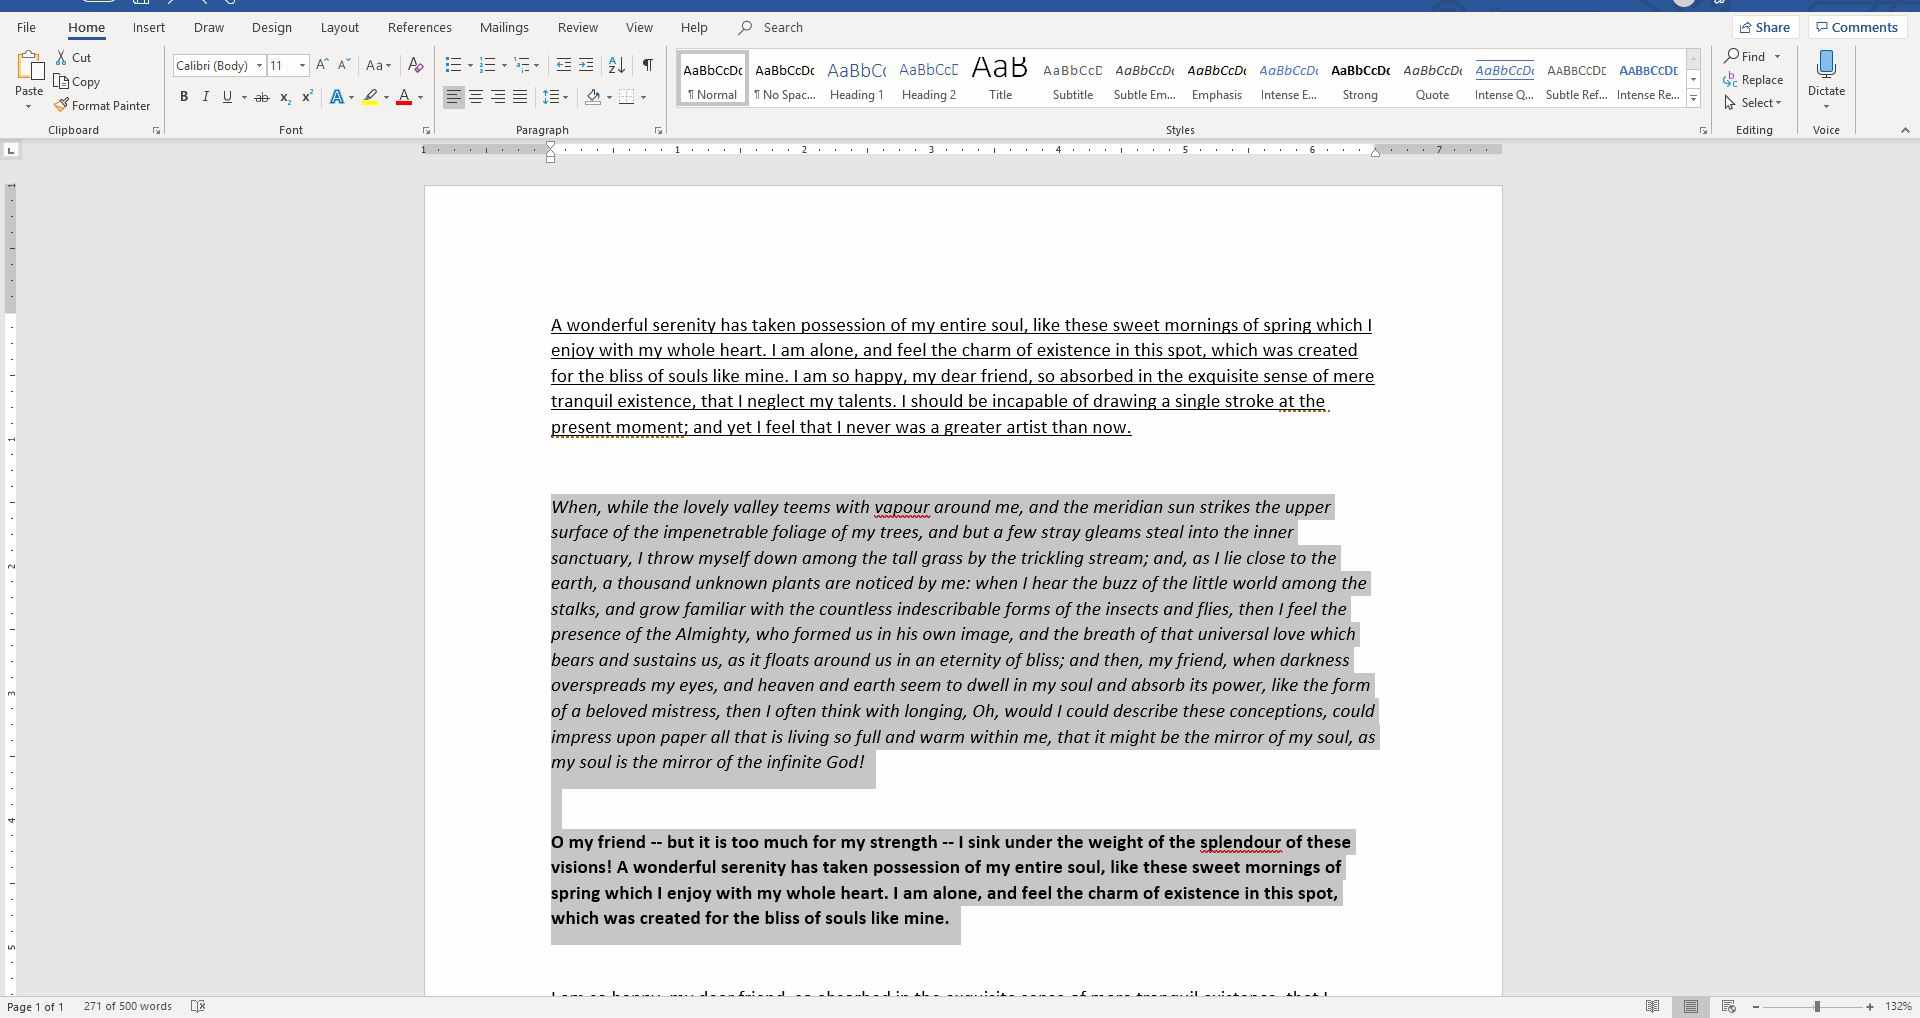 How to clear formatting in a word document